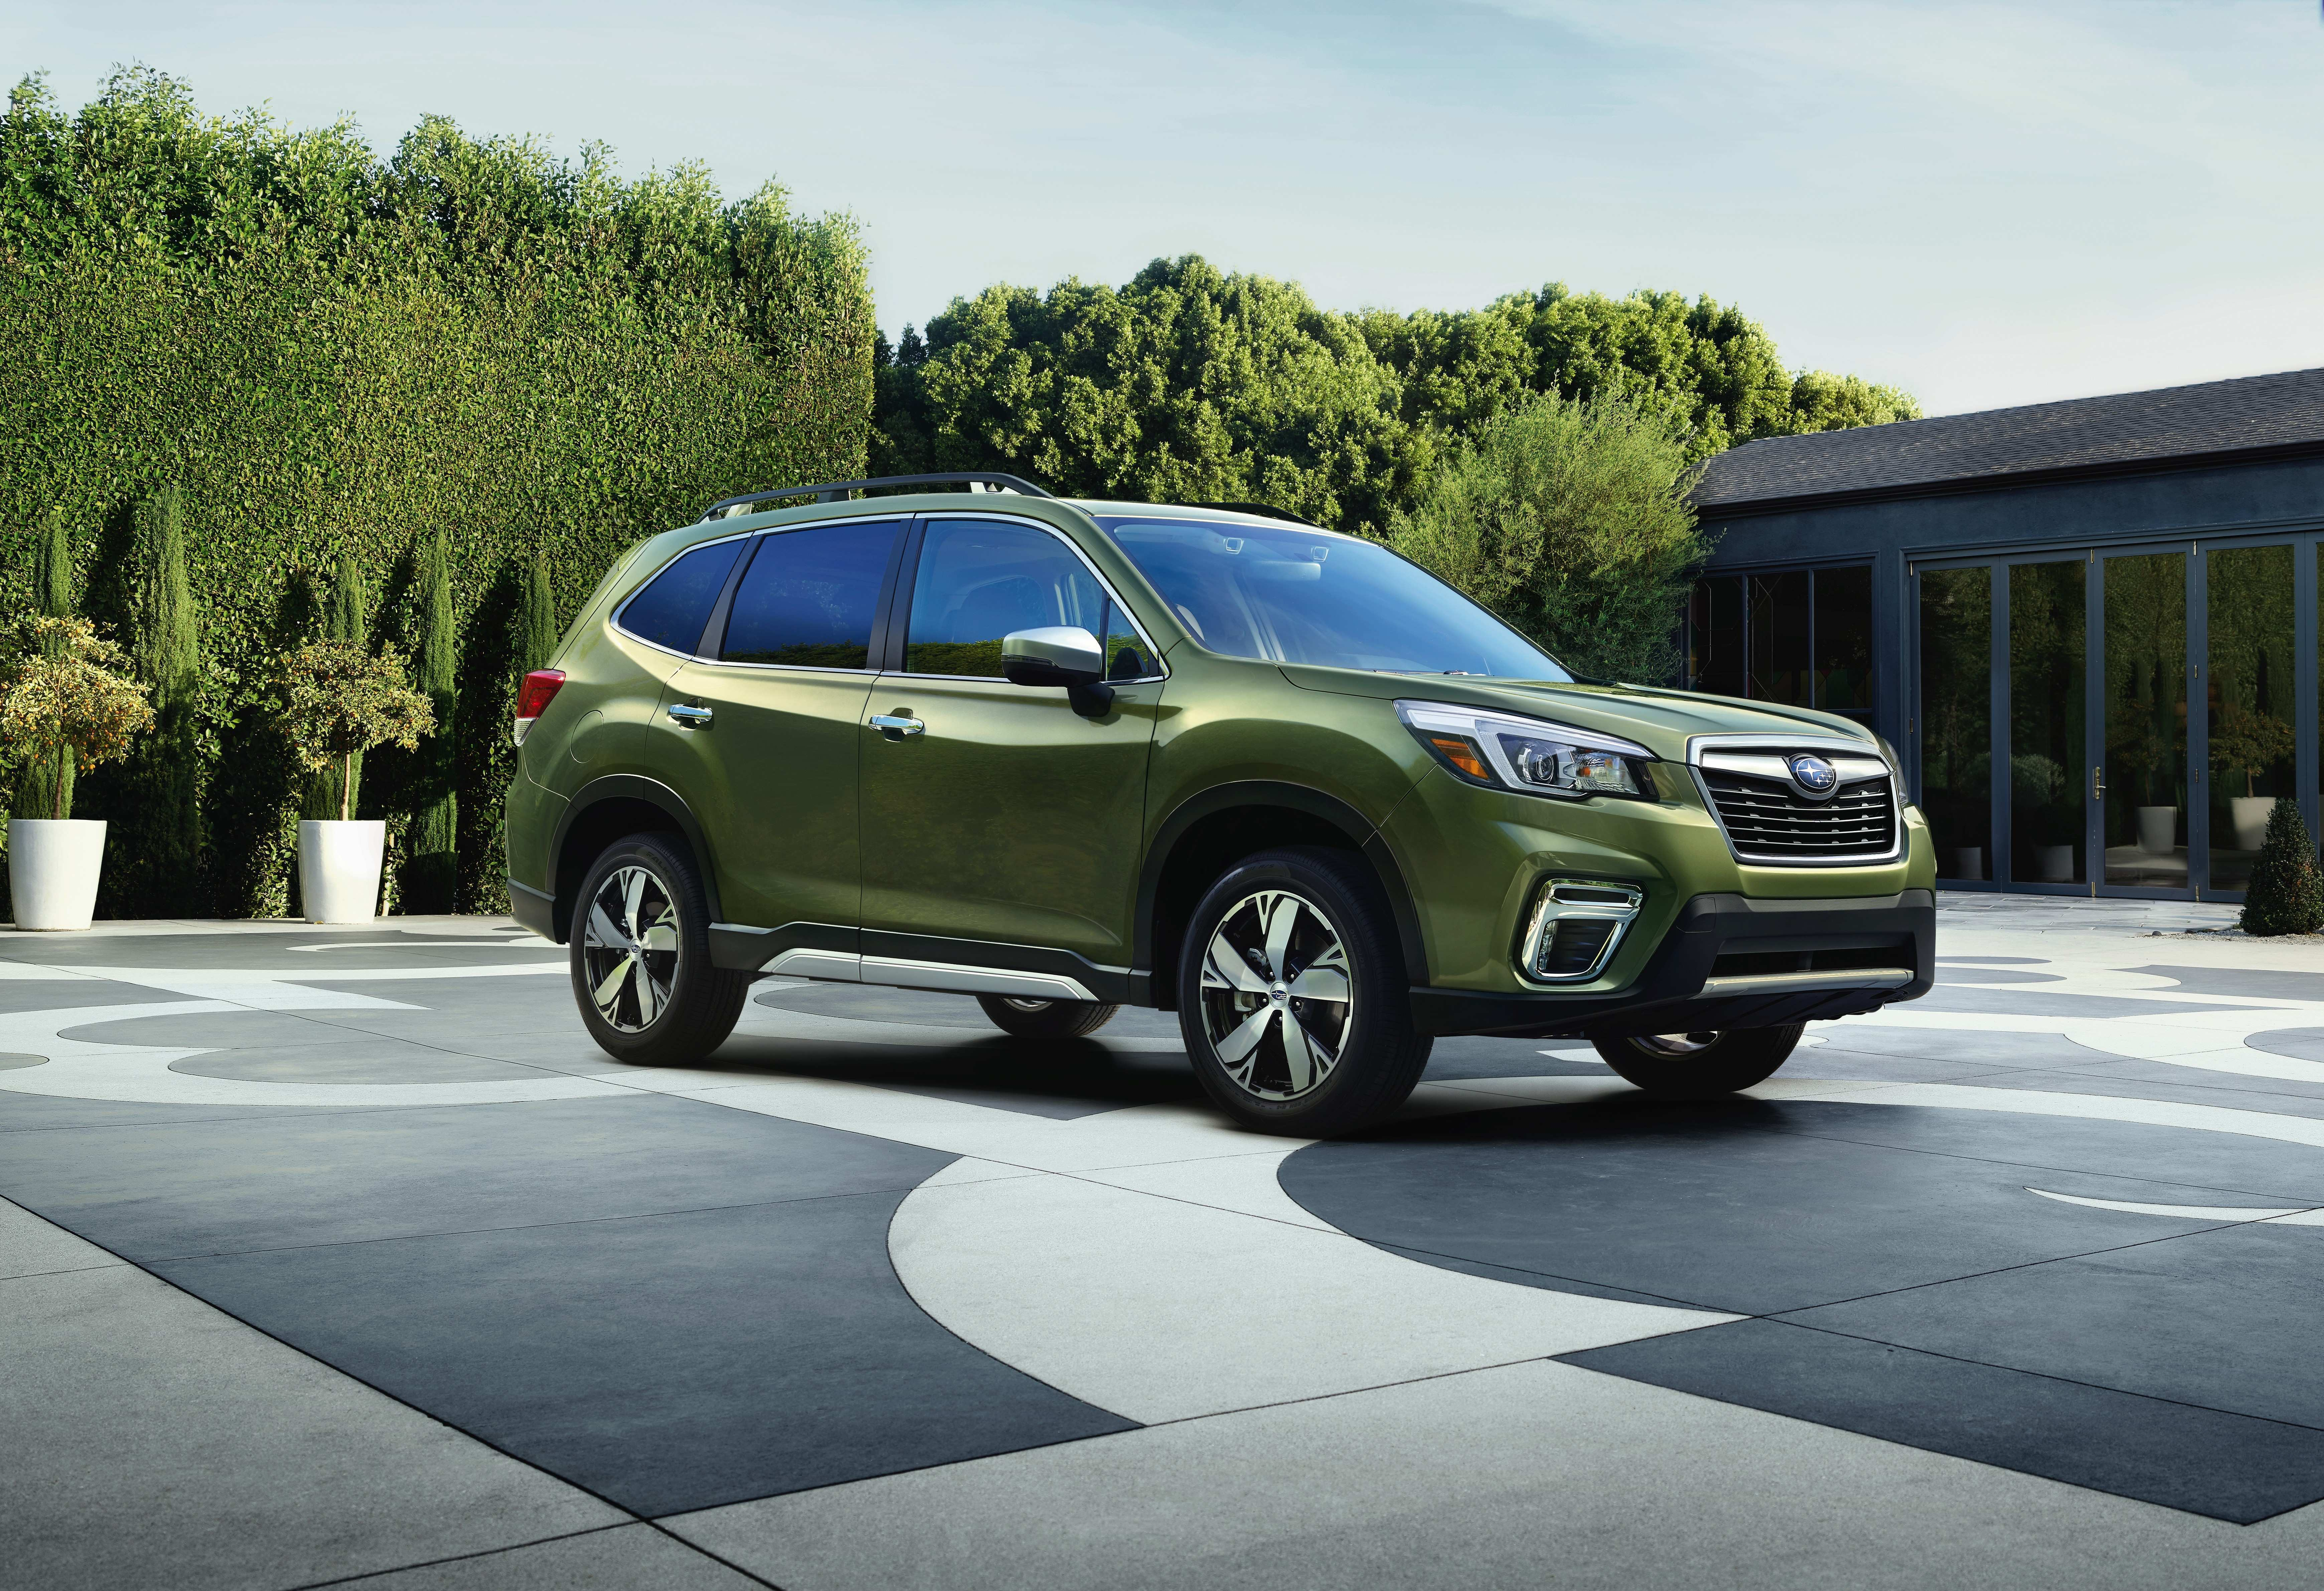 71 A New Generation 2020 Subaru Forester Release Date And Concept